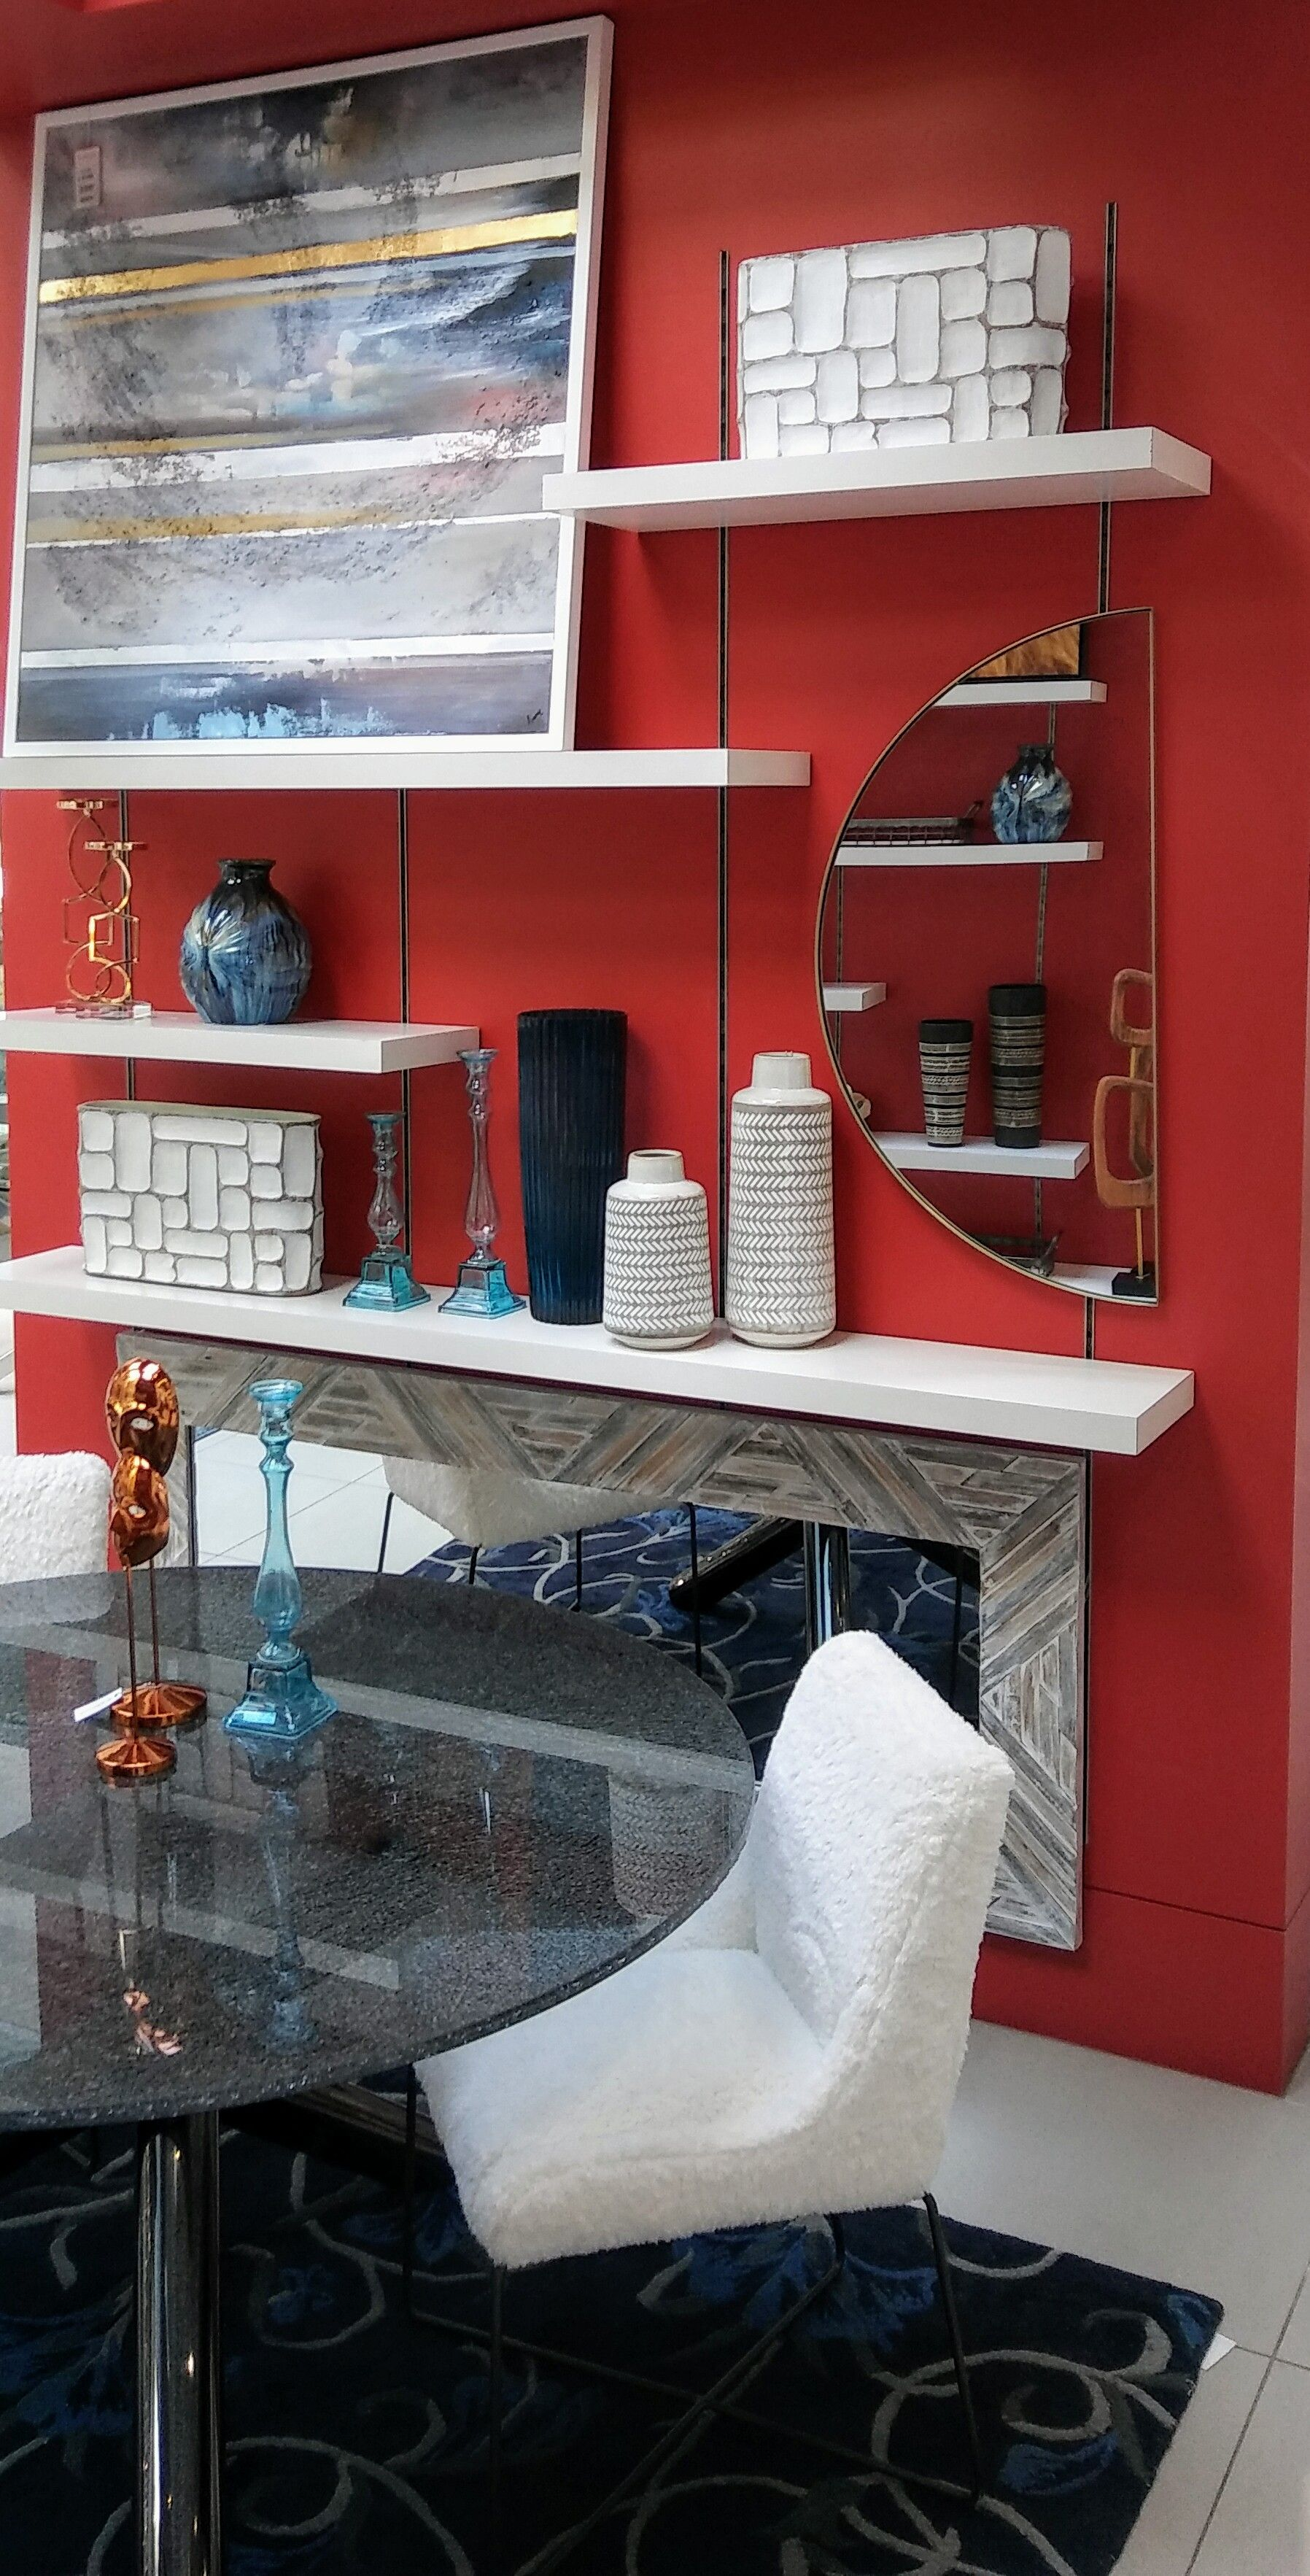 Mur Accent Rouge Et Decorations Blanches Decoration Blanc Mobilier De Salon Decoration